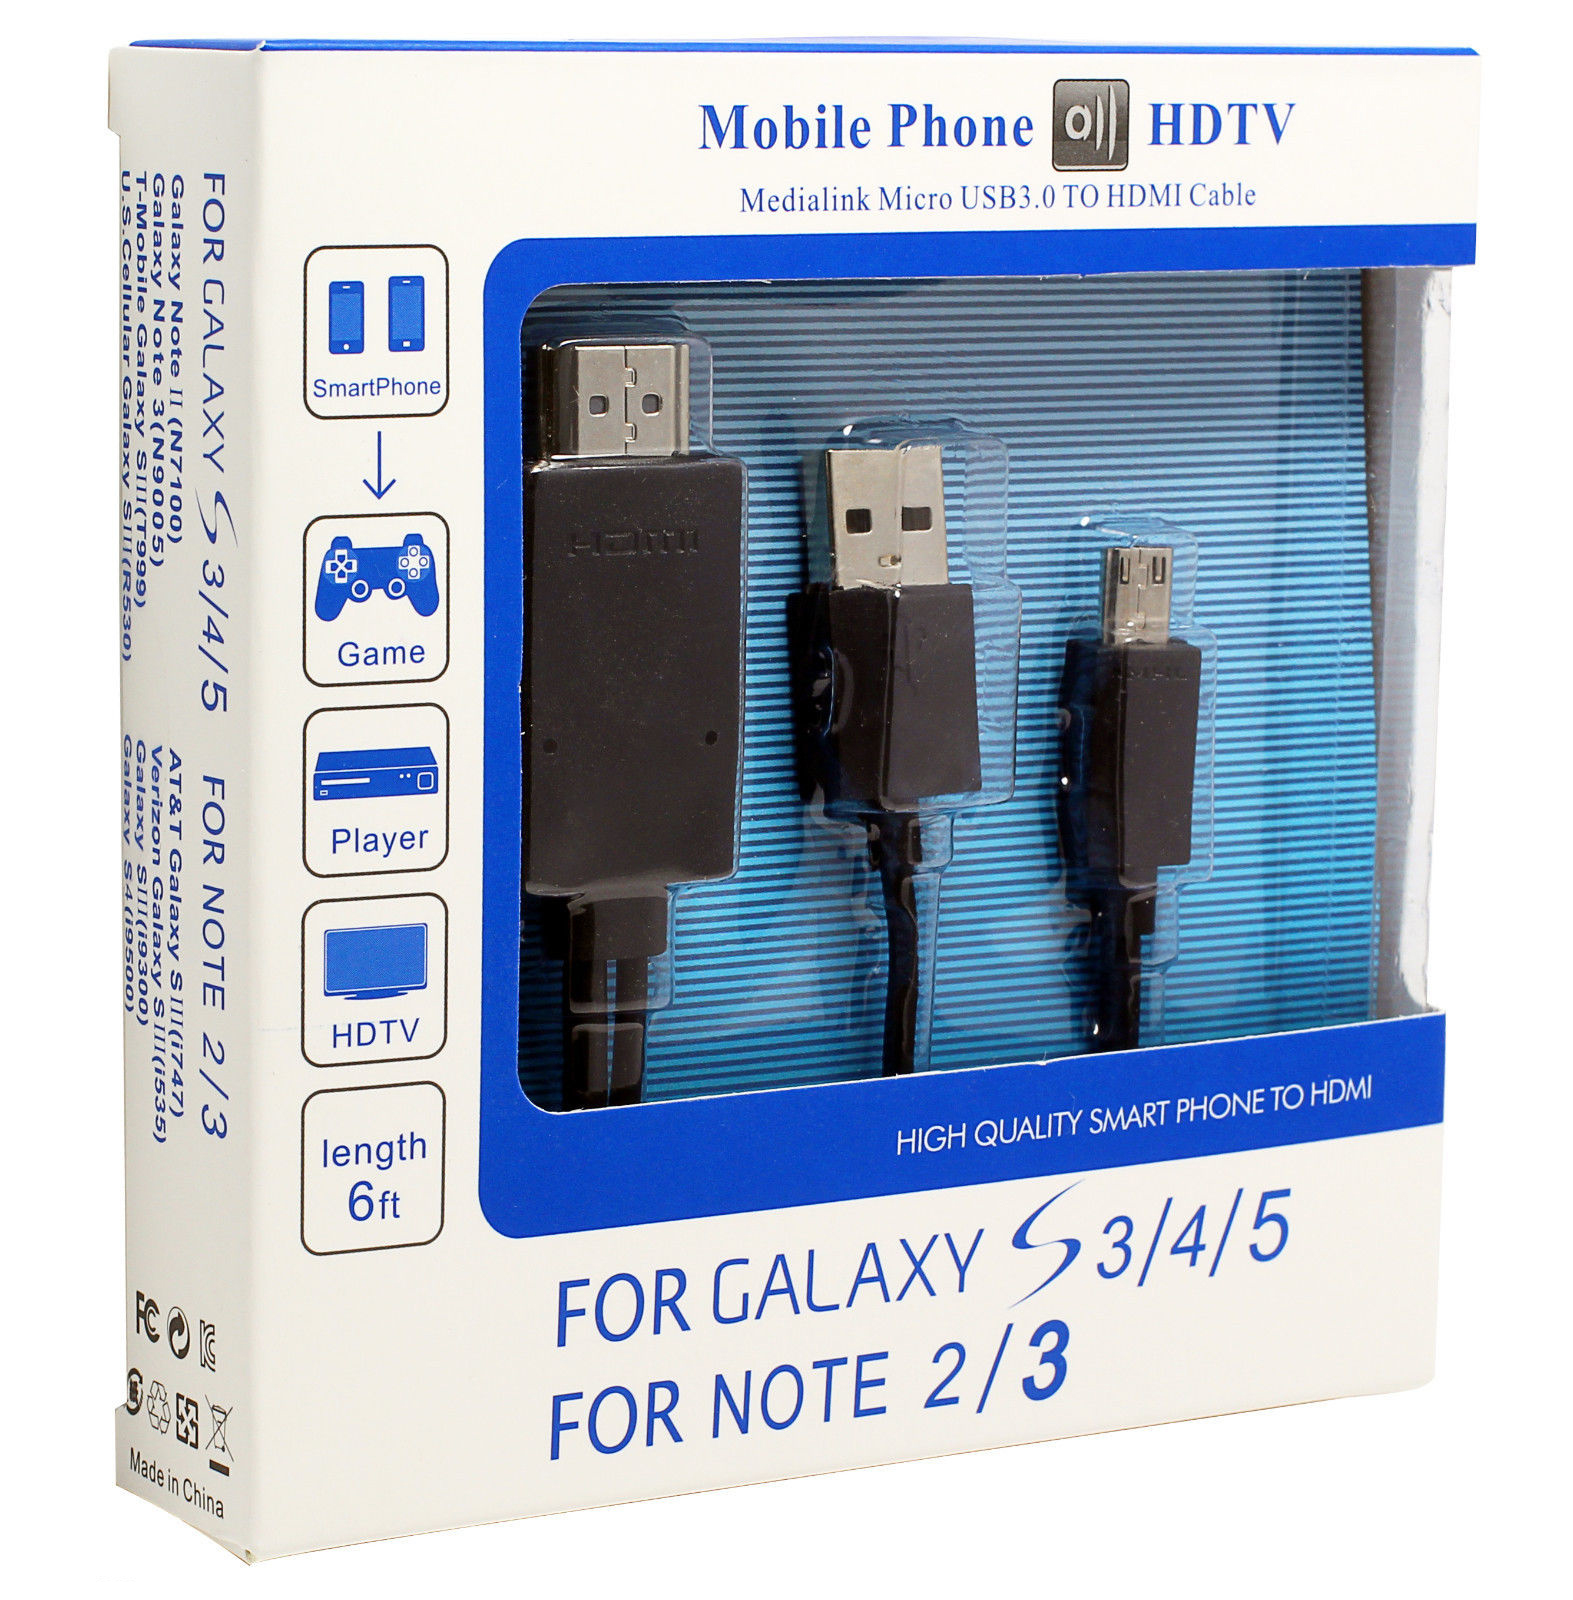 samsung galaxy s3 guided access